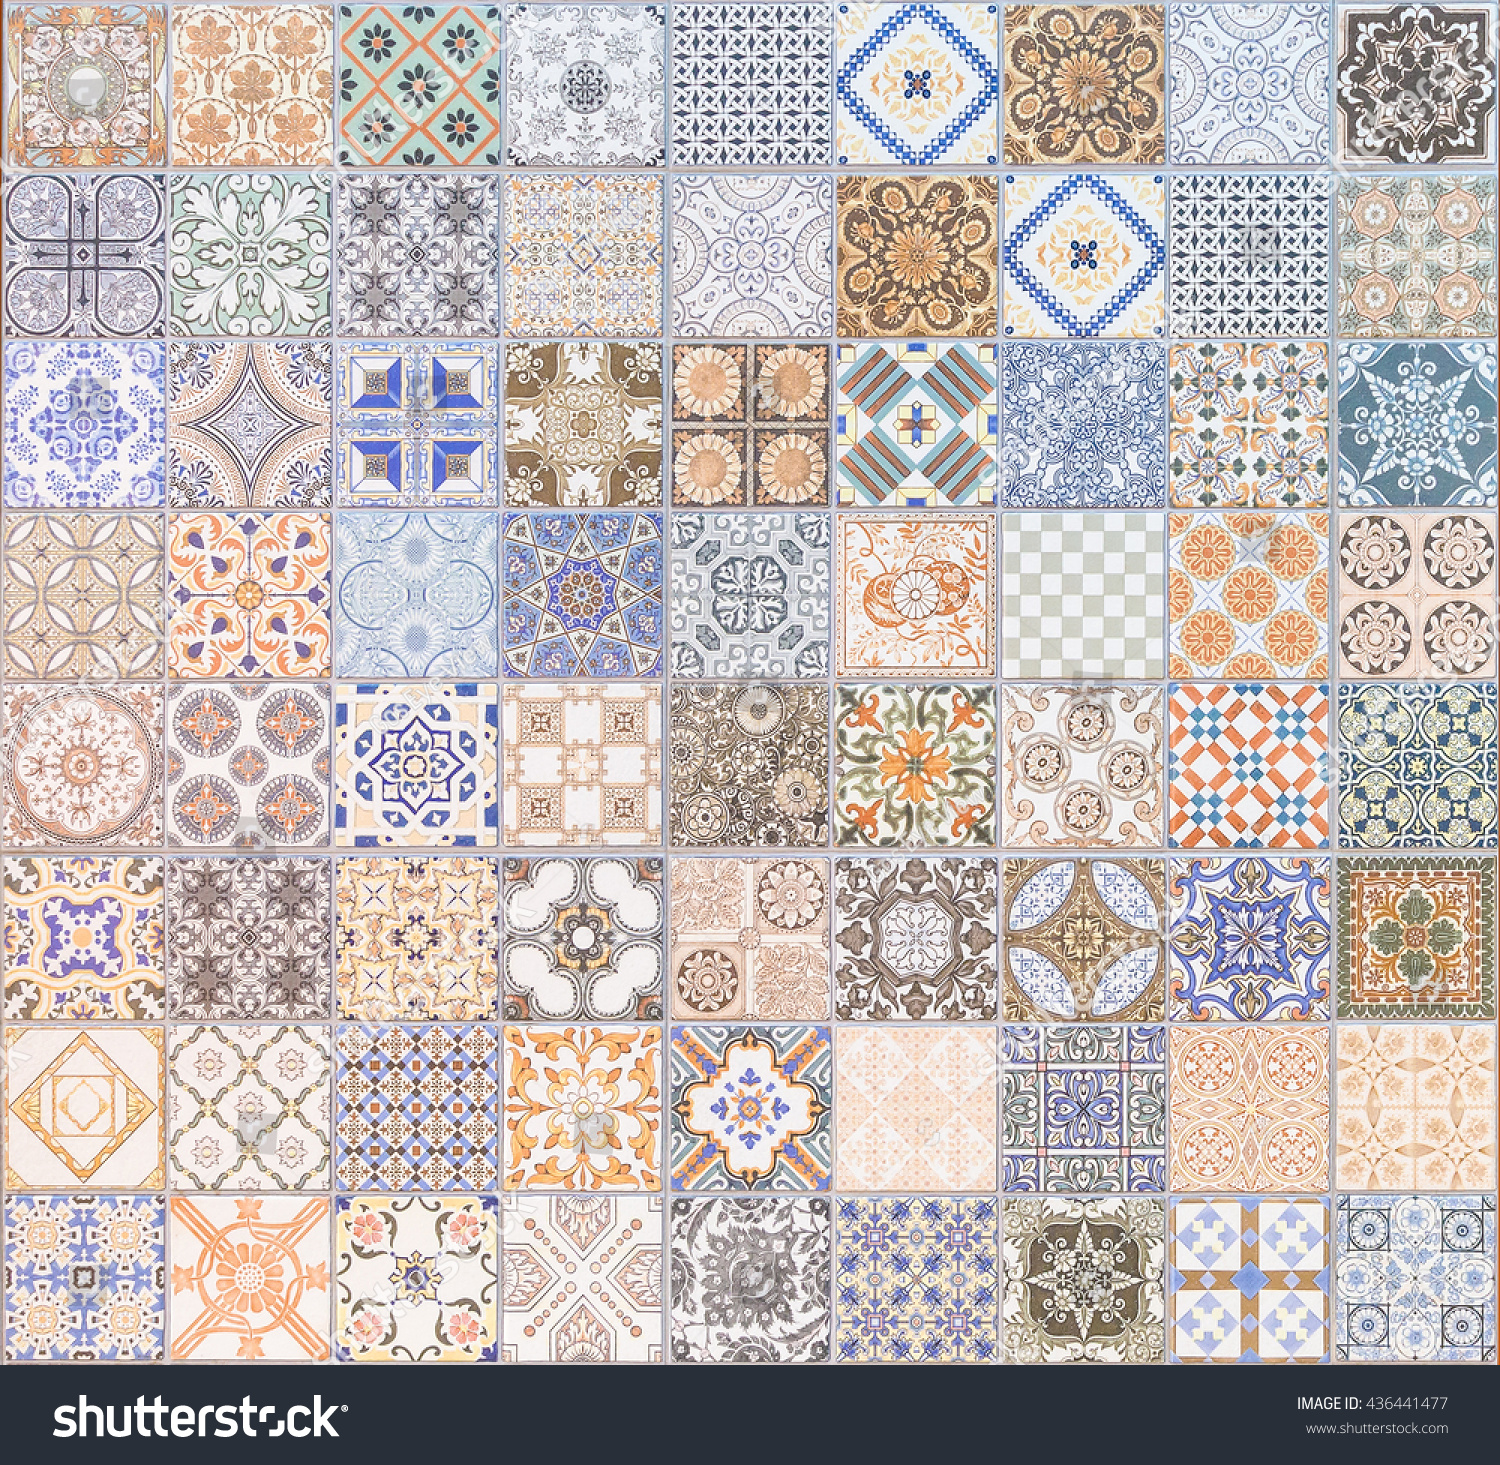 Ceramic Tiles Patterns Background Texture Stock Photo (Royalty Free ...